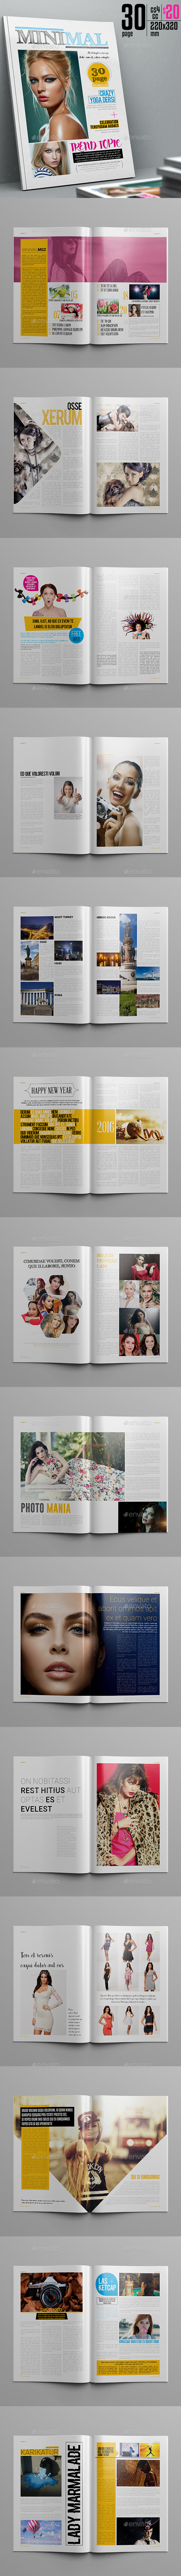 Minimal Magazine Template 30 Page - Magazines Print Templates